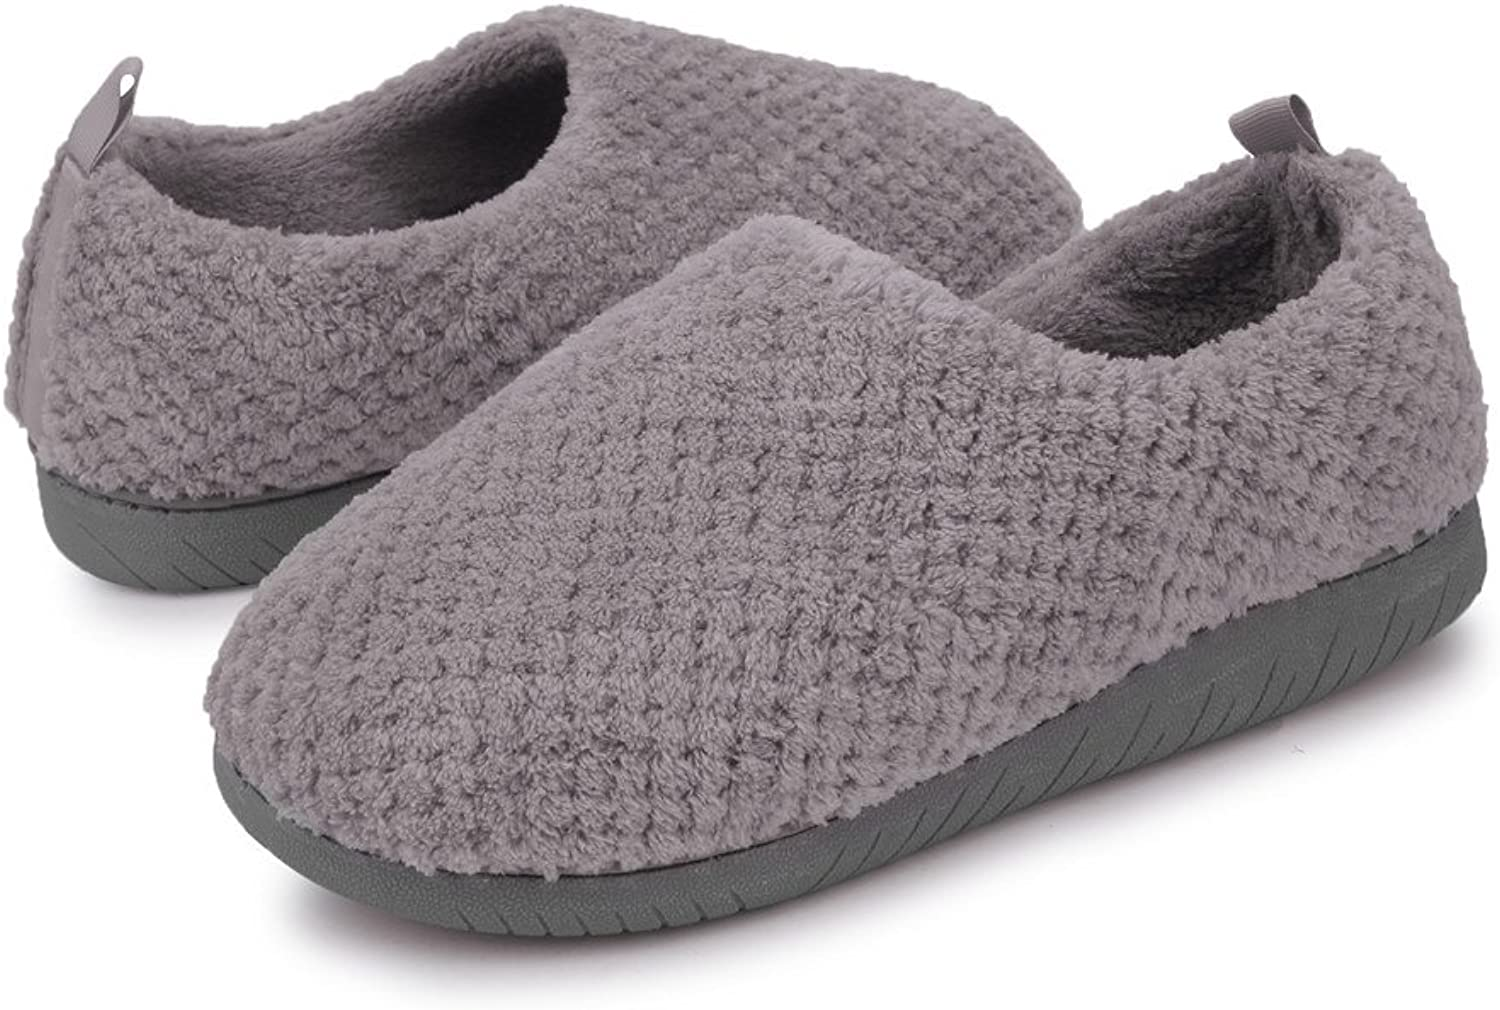 JIASUQI Women's and Men's Slip on Memory Foam Clogs Indoor Home Slippers Casual Fur Warm shoes